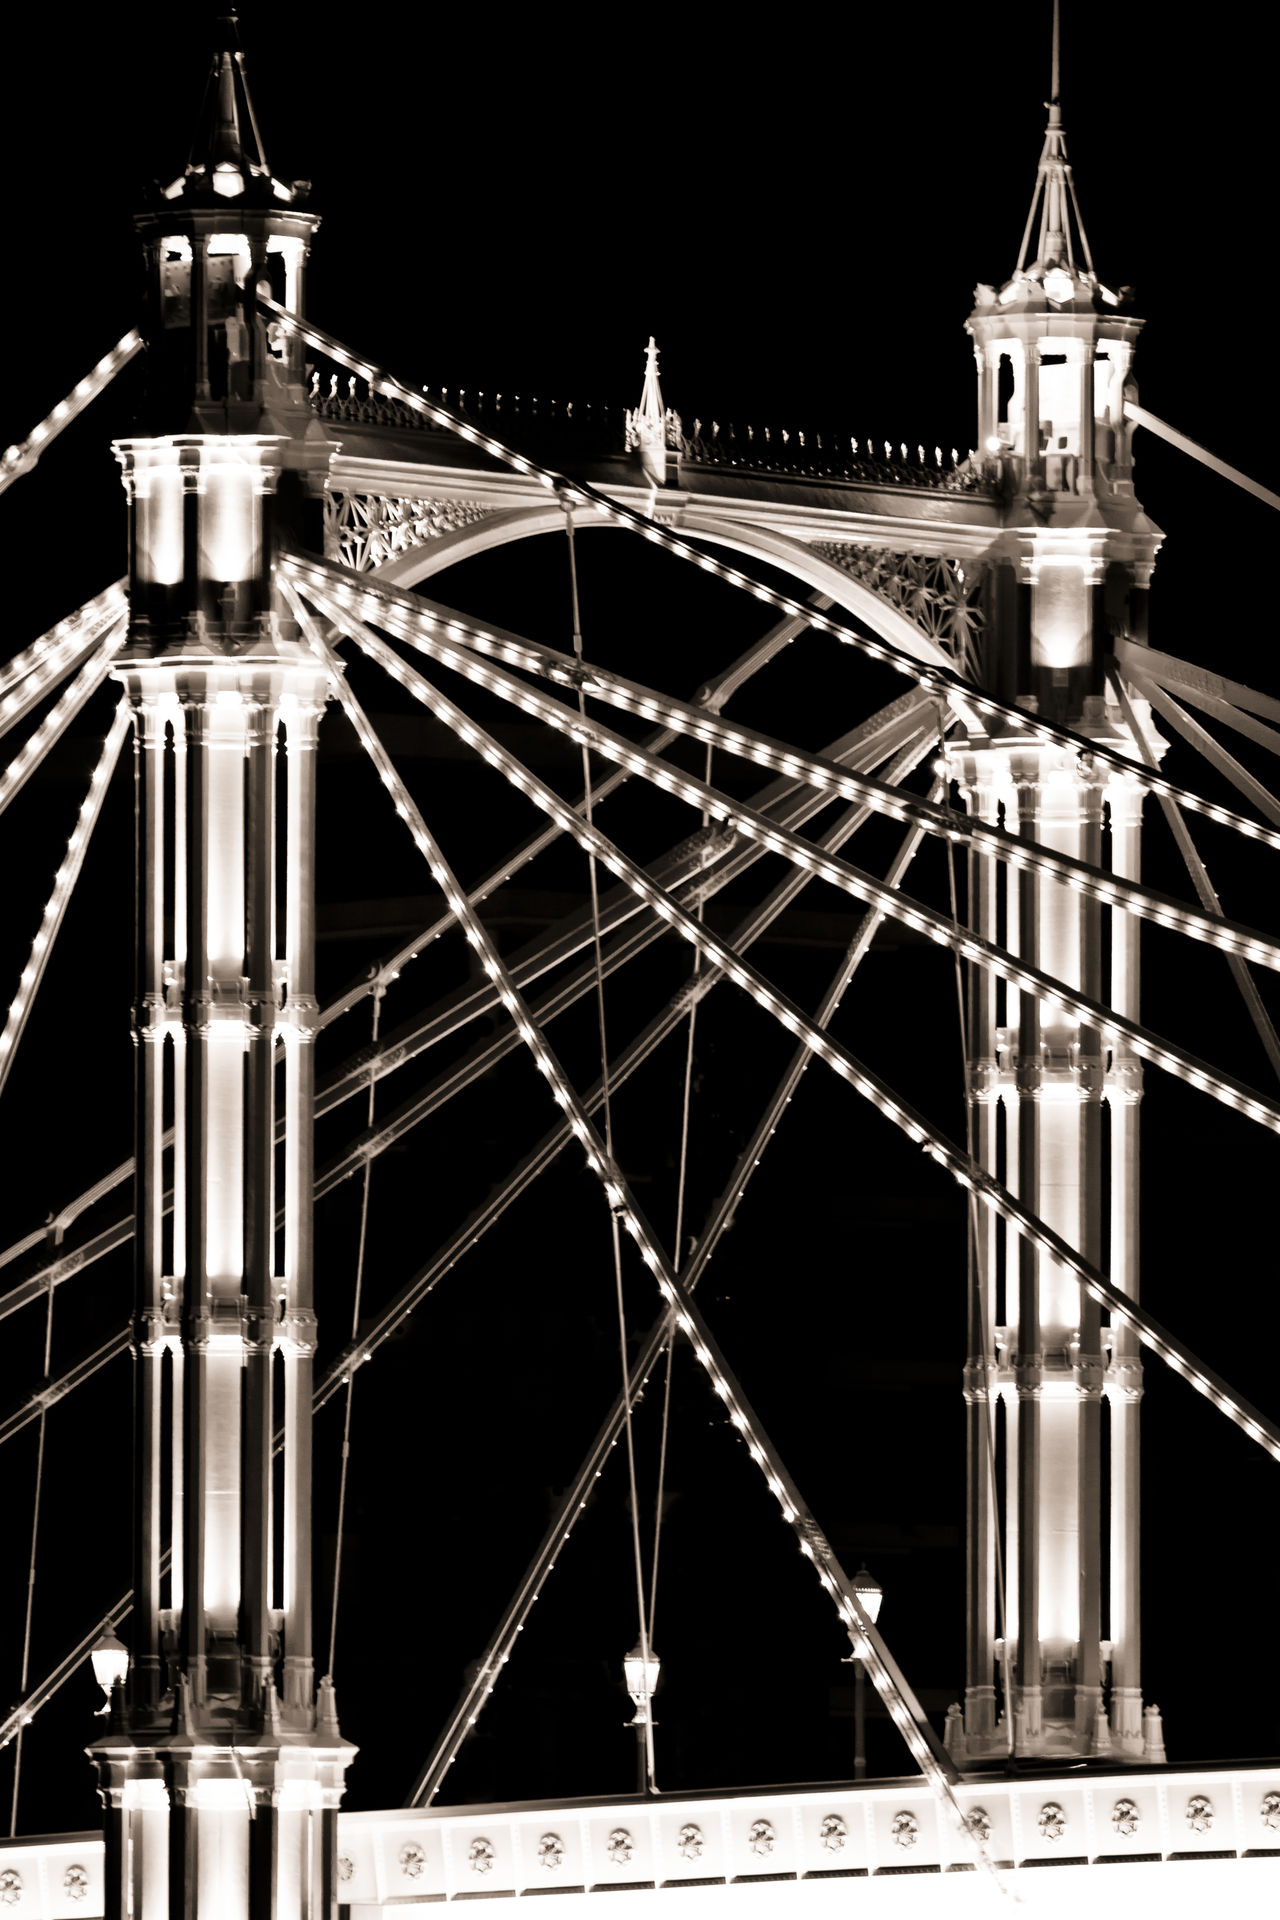 Albert Bridge, Chelsea, London Albert Bridge Architecture Bridge Built Structure Chelsea Detail Famous Place Illuminated International Landmark Light London Majestic Night Nightphotography No People Outdoors Tourism Tower Travel Destinations Vacations